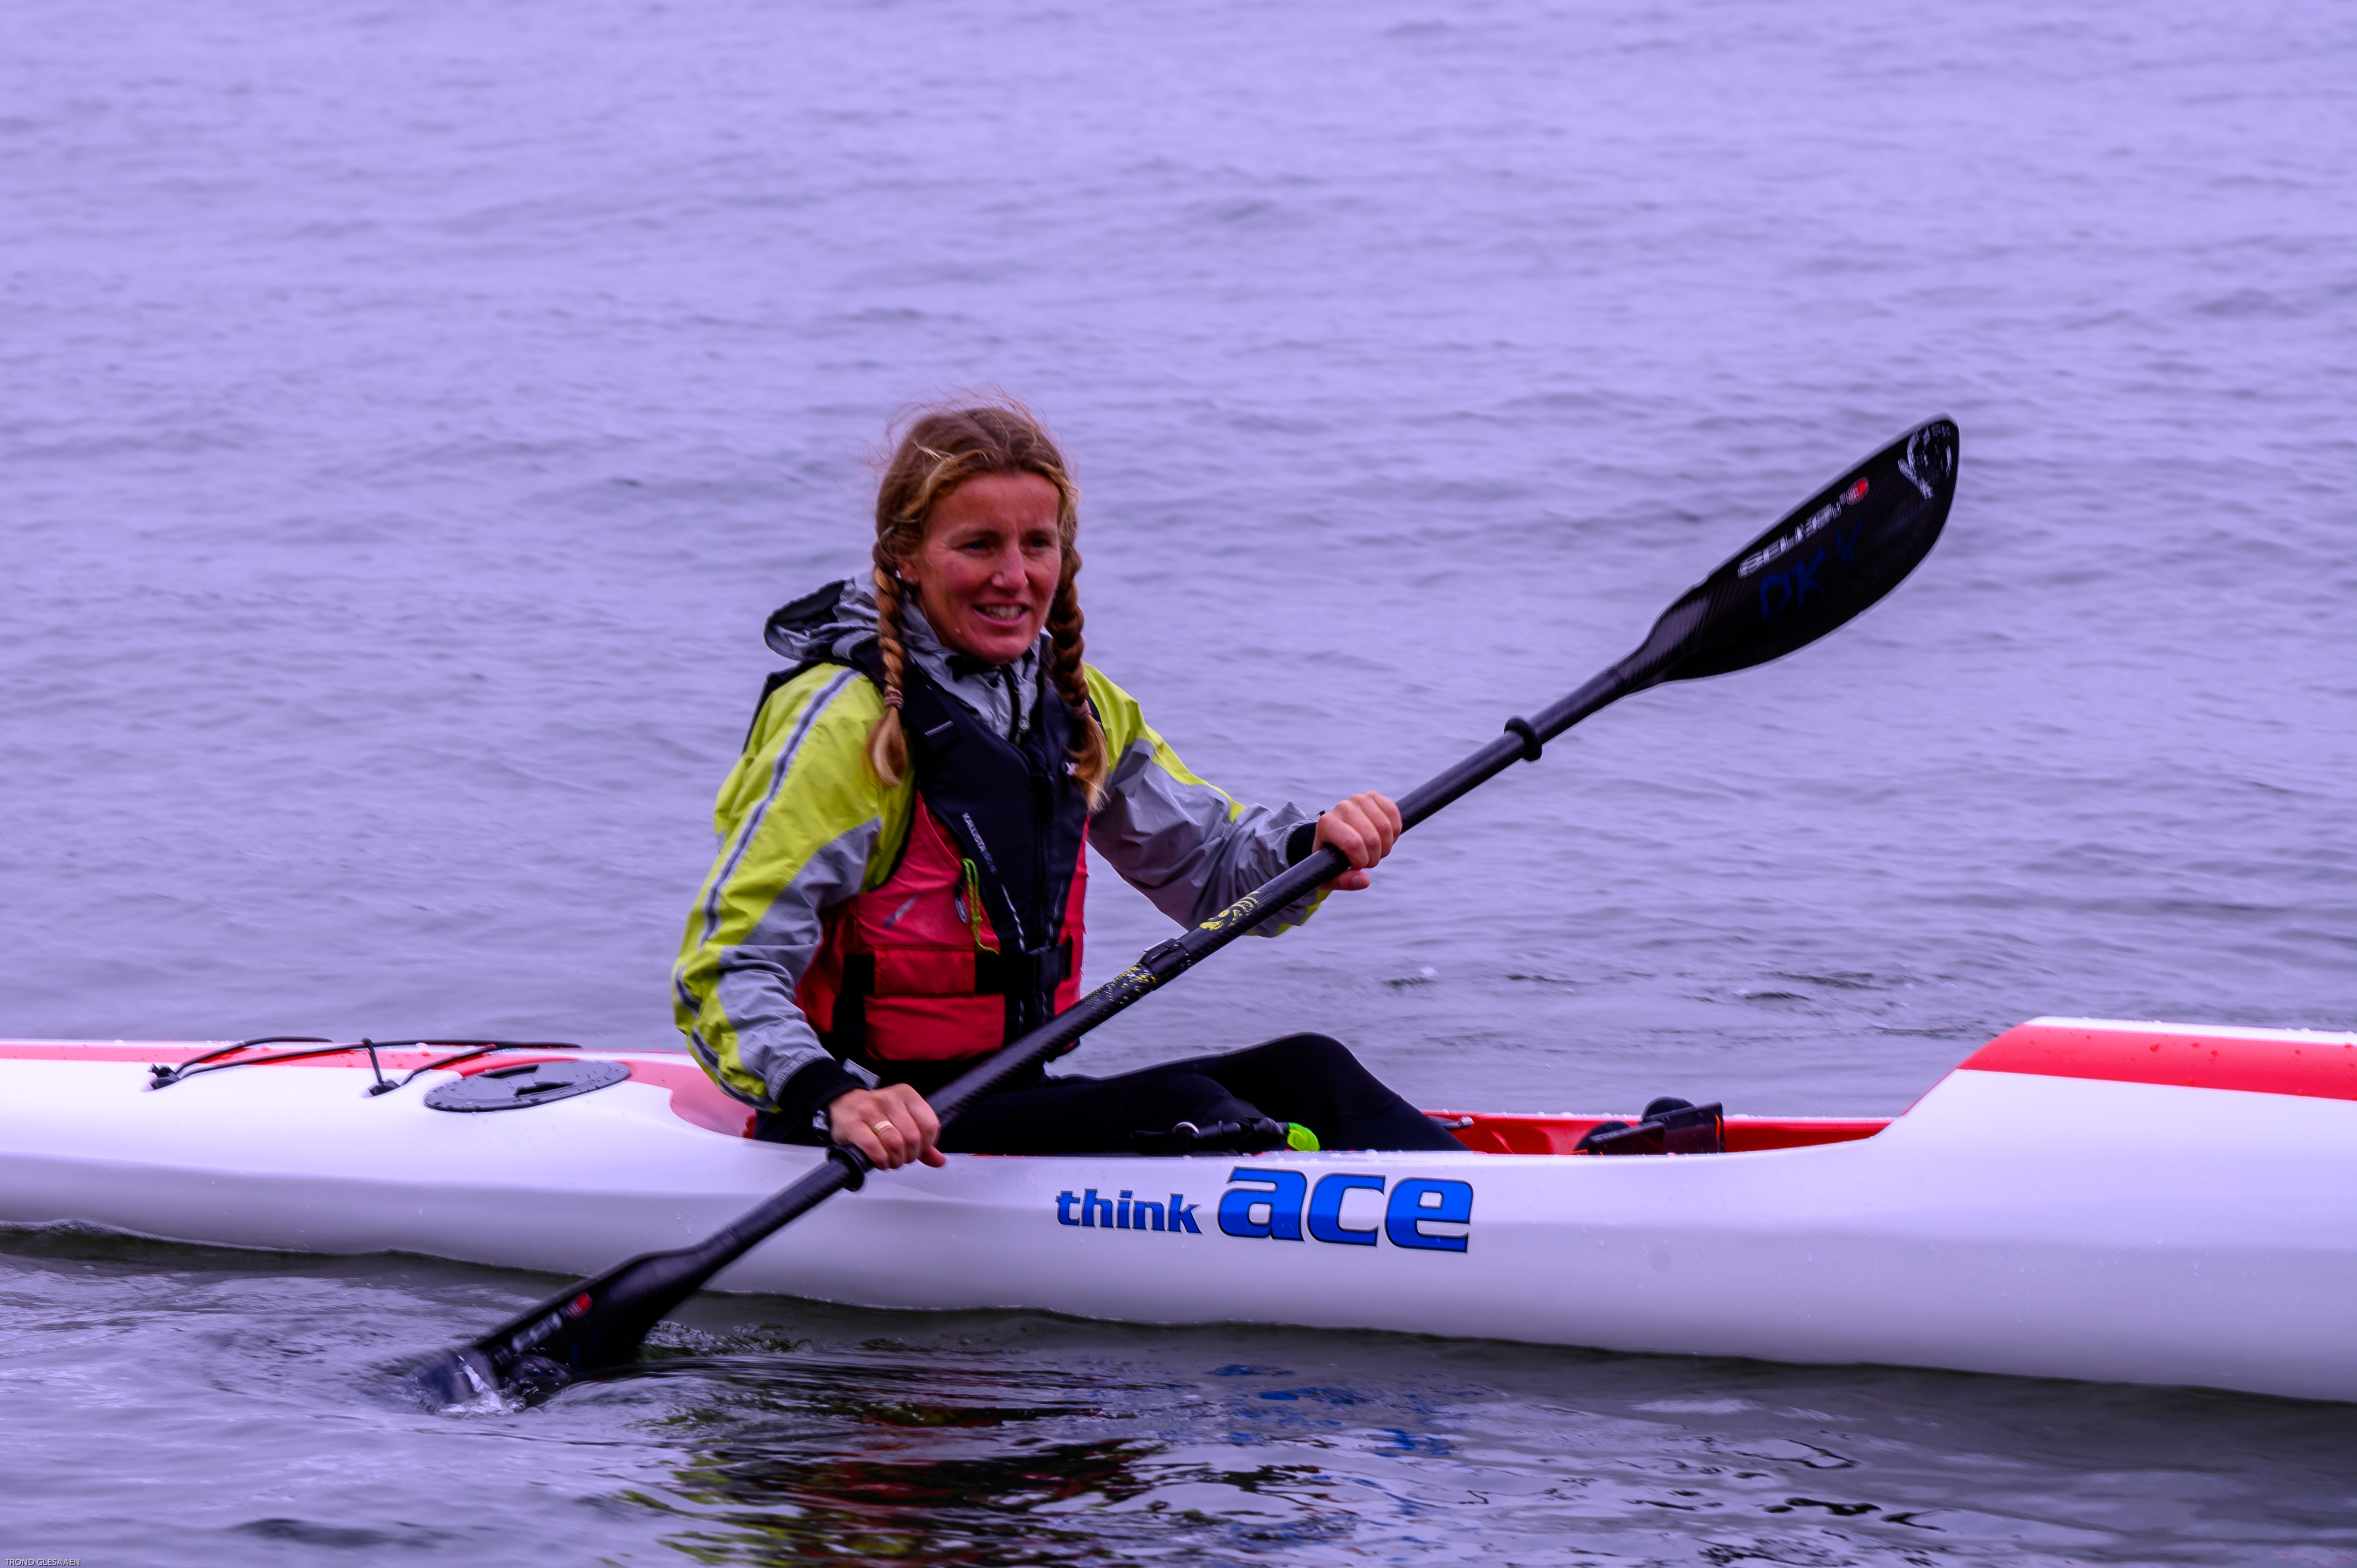 2019-09-22-Demodag-Surfski-Skipelle-Drøbak-010